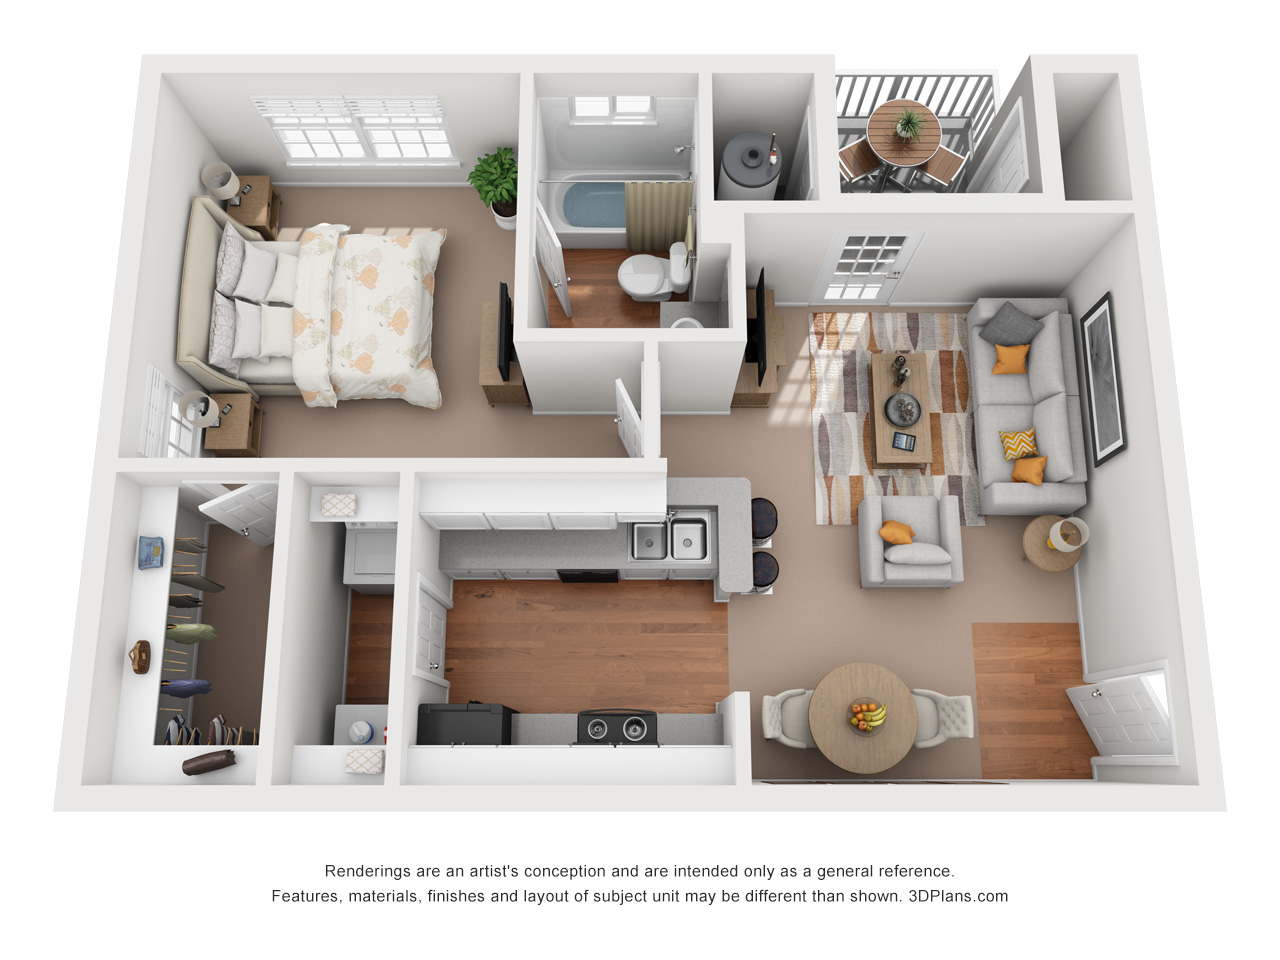 Floorplan - The Cape Cod image